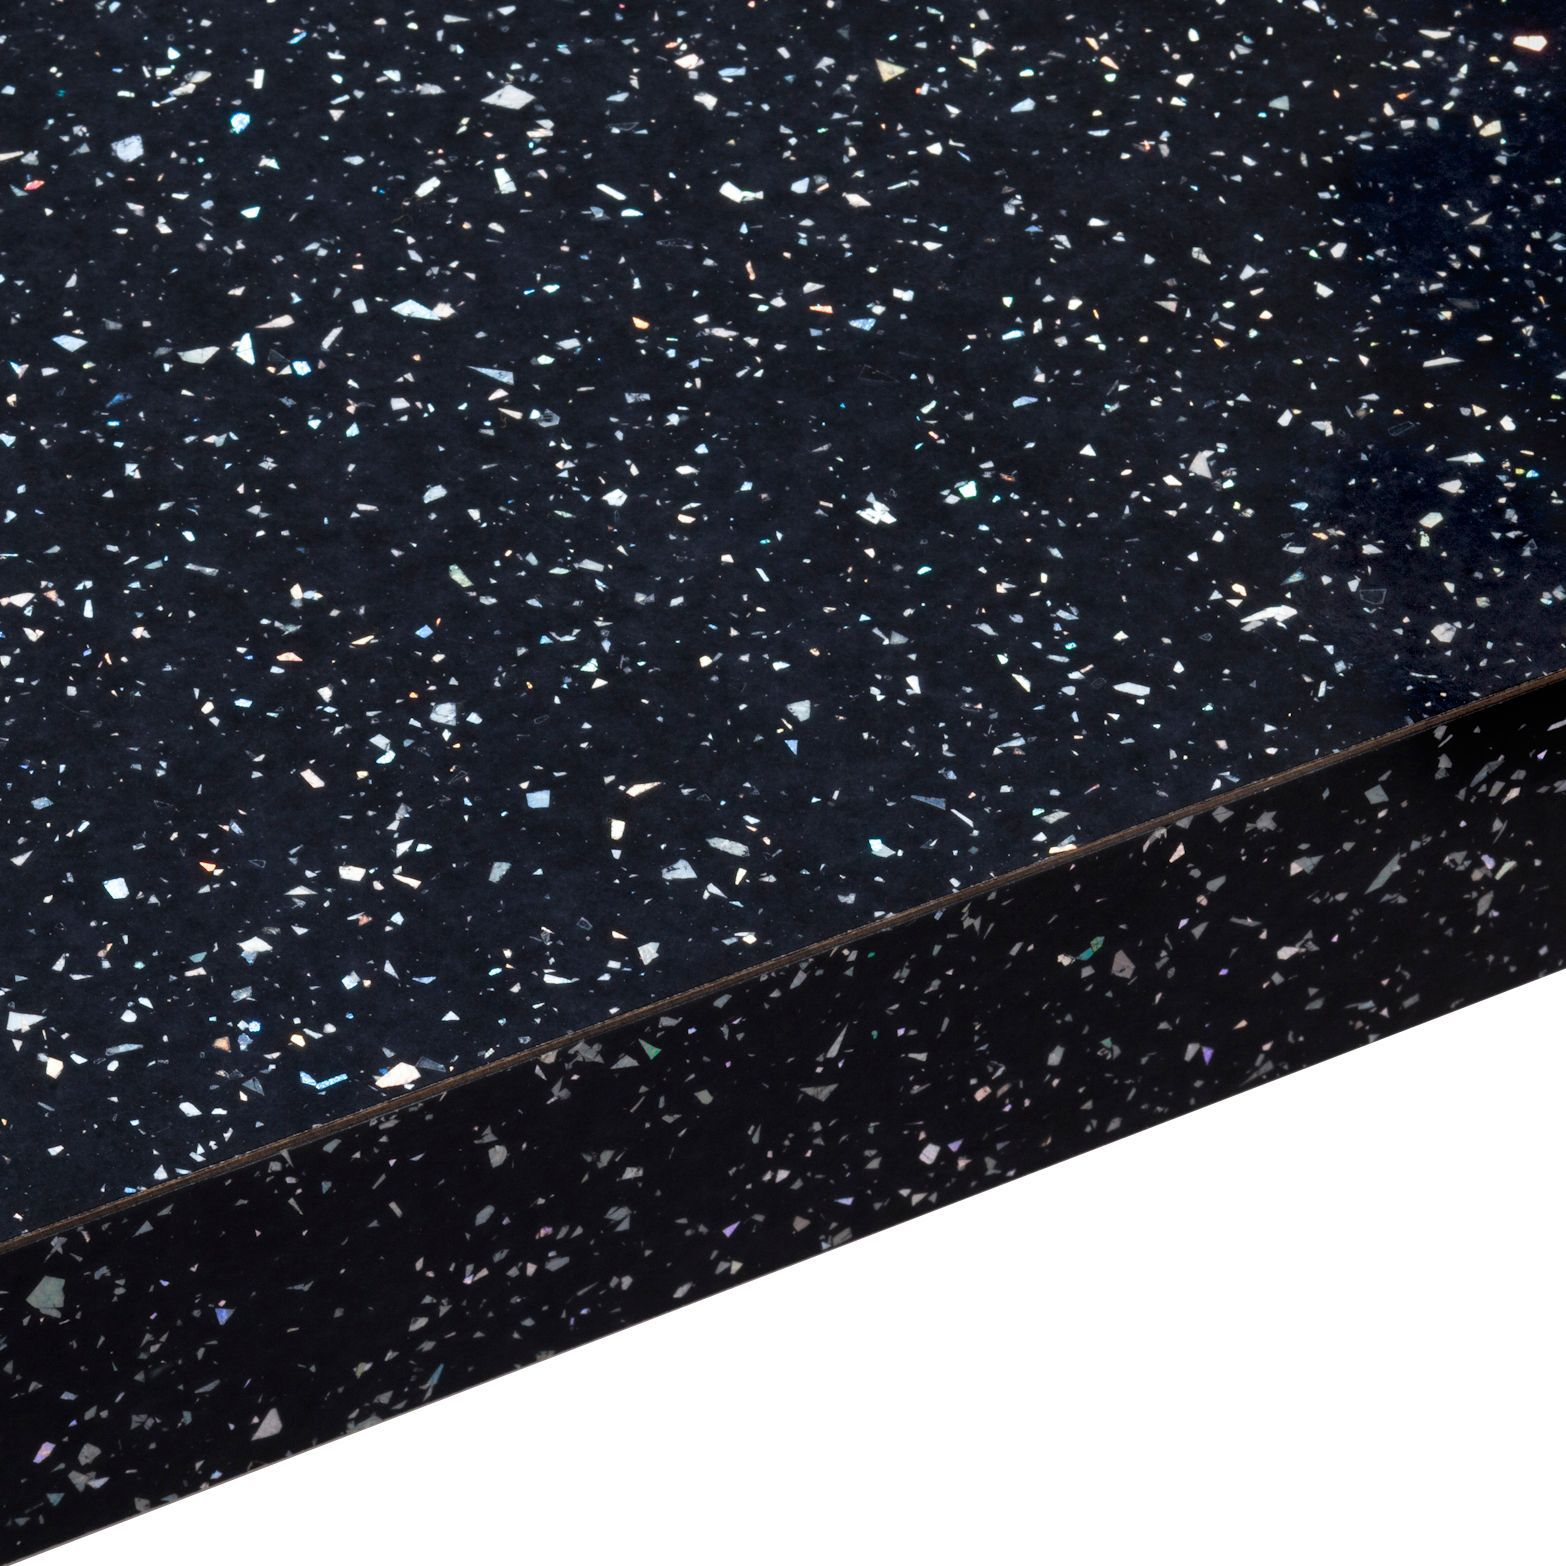 38mm Astral Black Gloss Square Edge Laminate Worktop L 3m